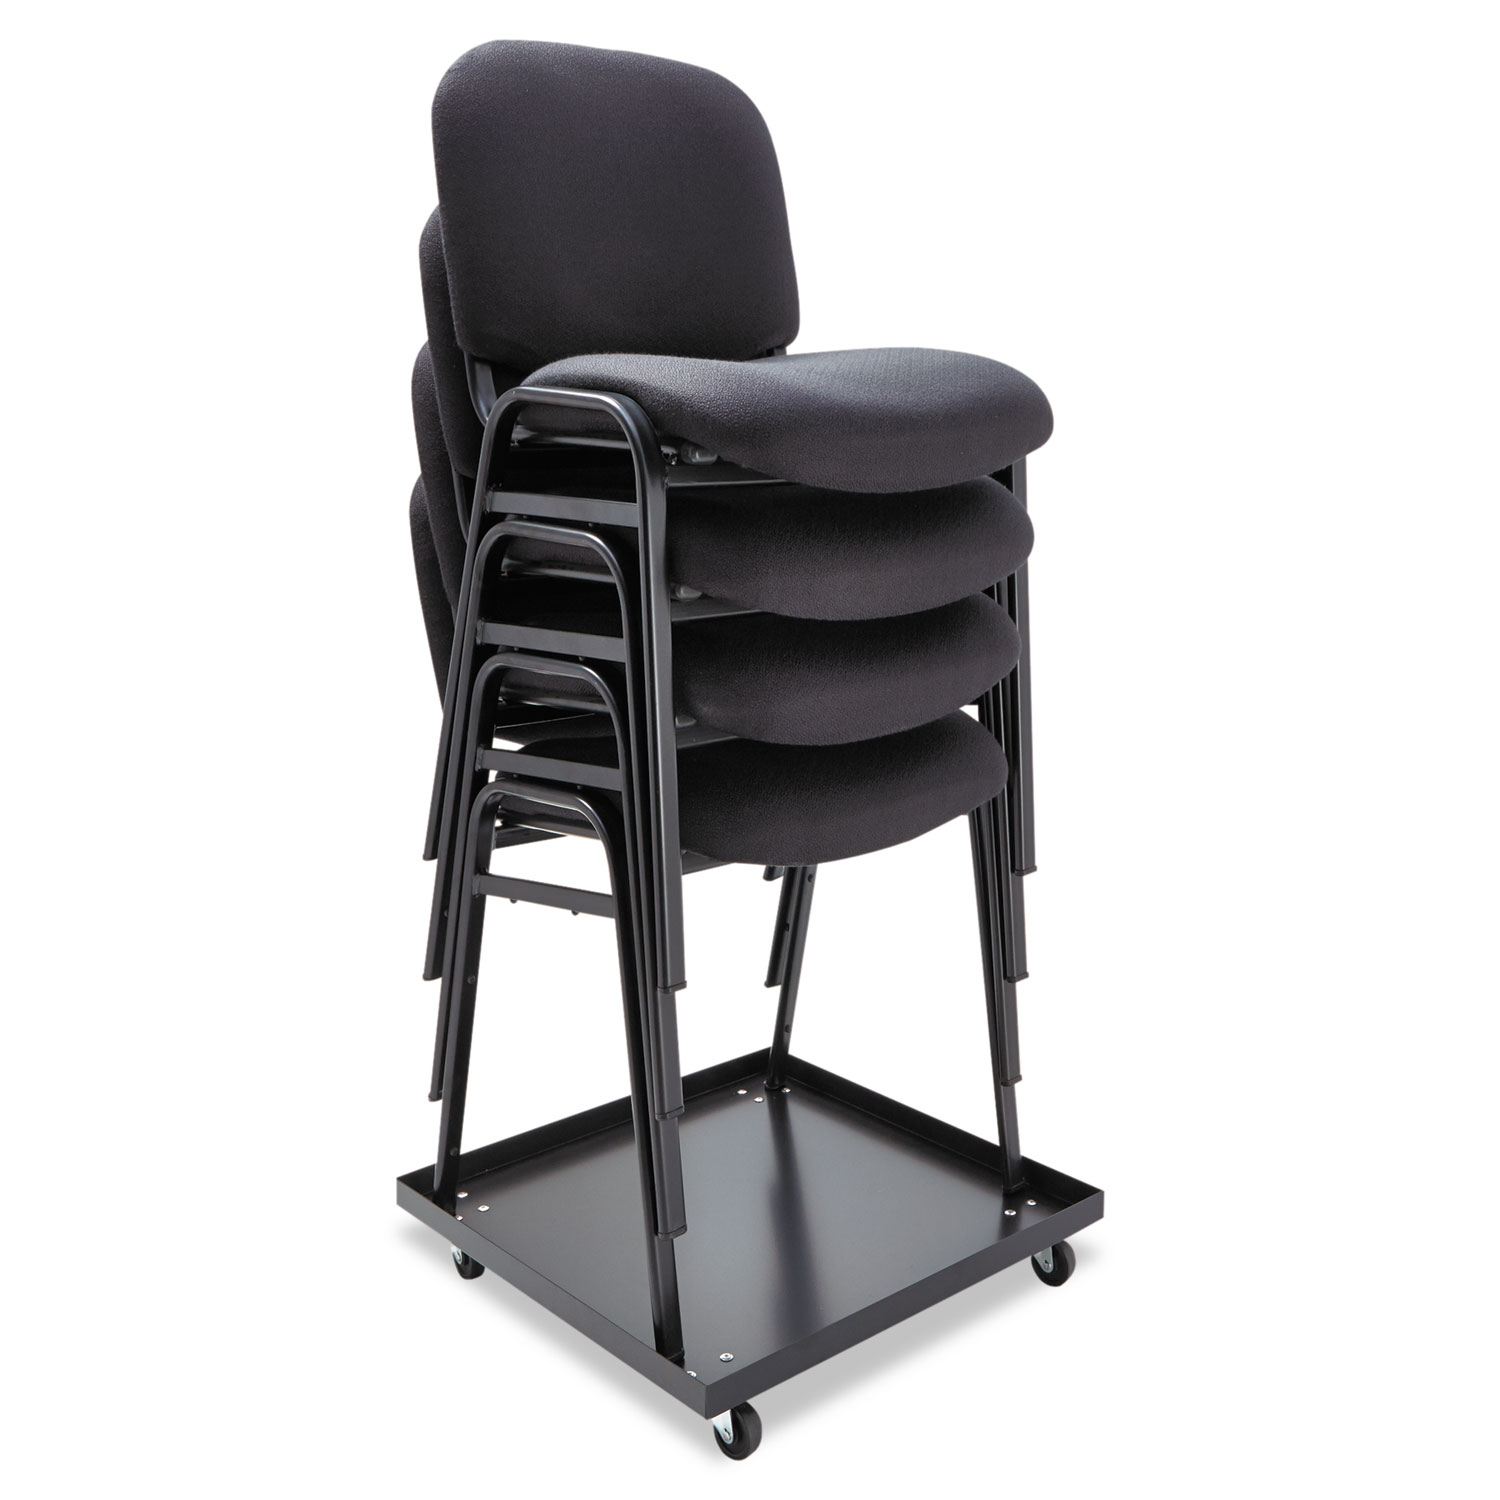 staples stacking chairs chair rentals okc dolly by alera alesccart ontimesupplies